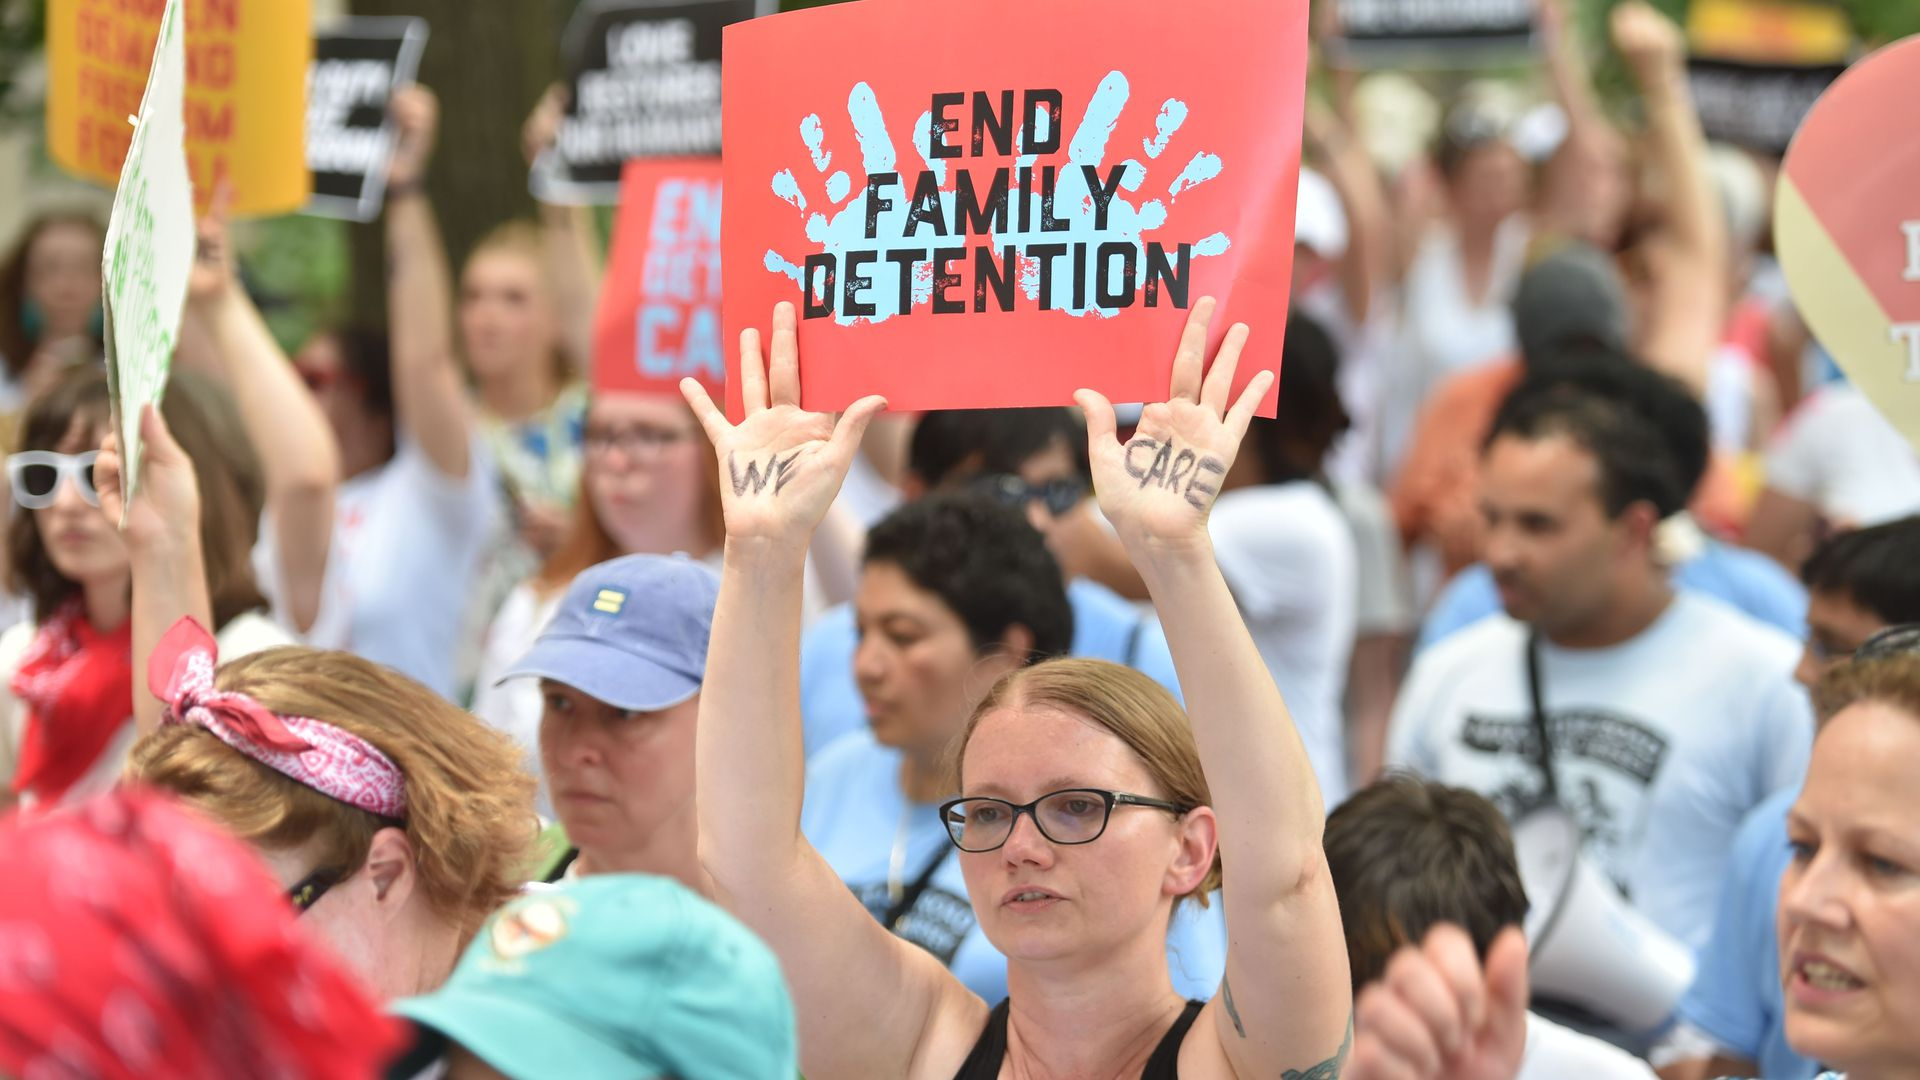 A crowd protests against family separation policies.